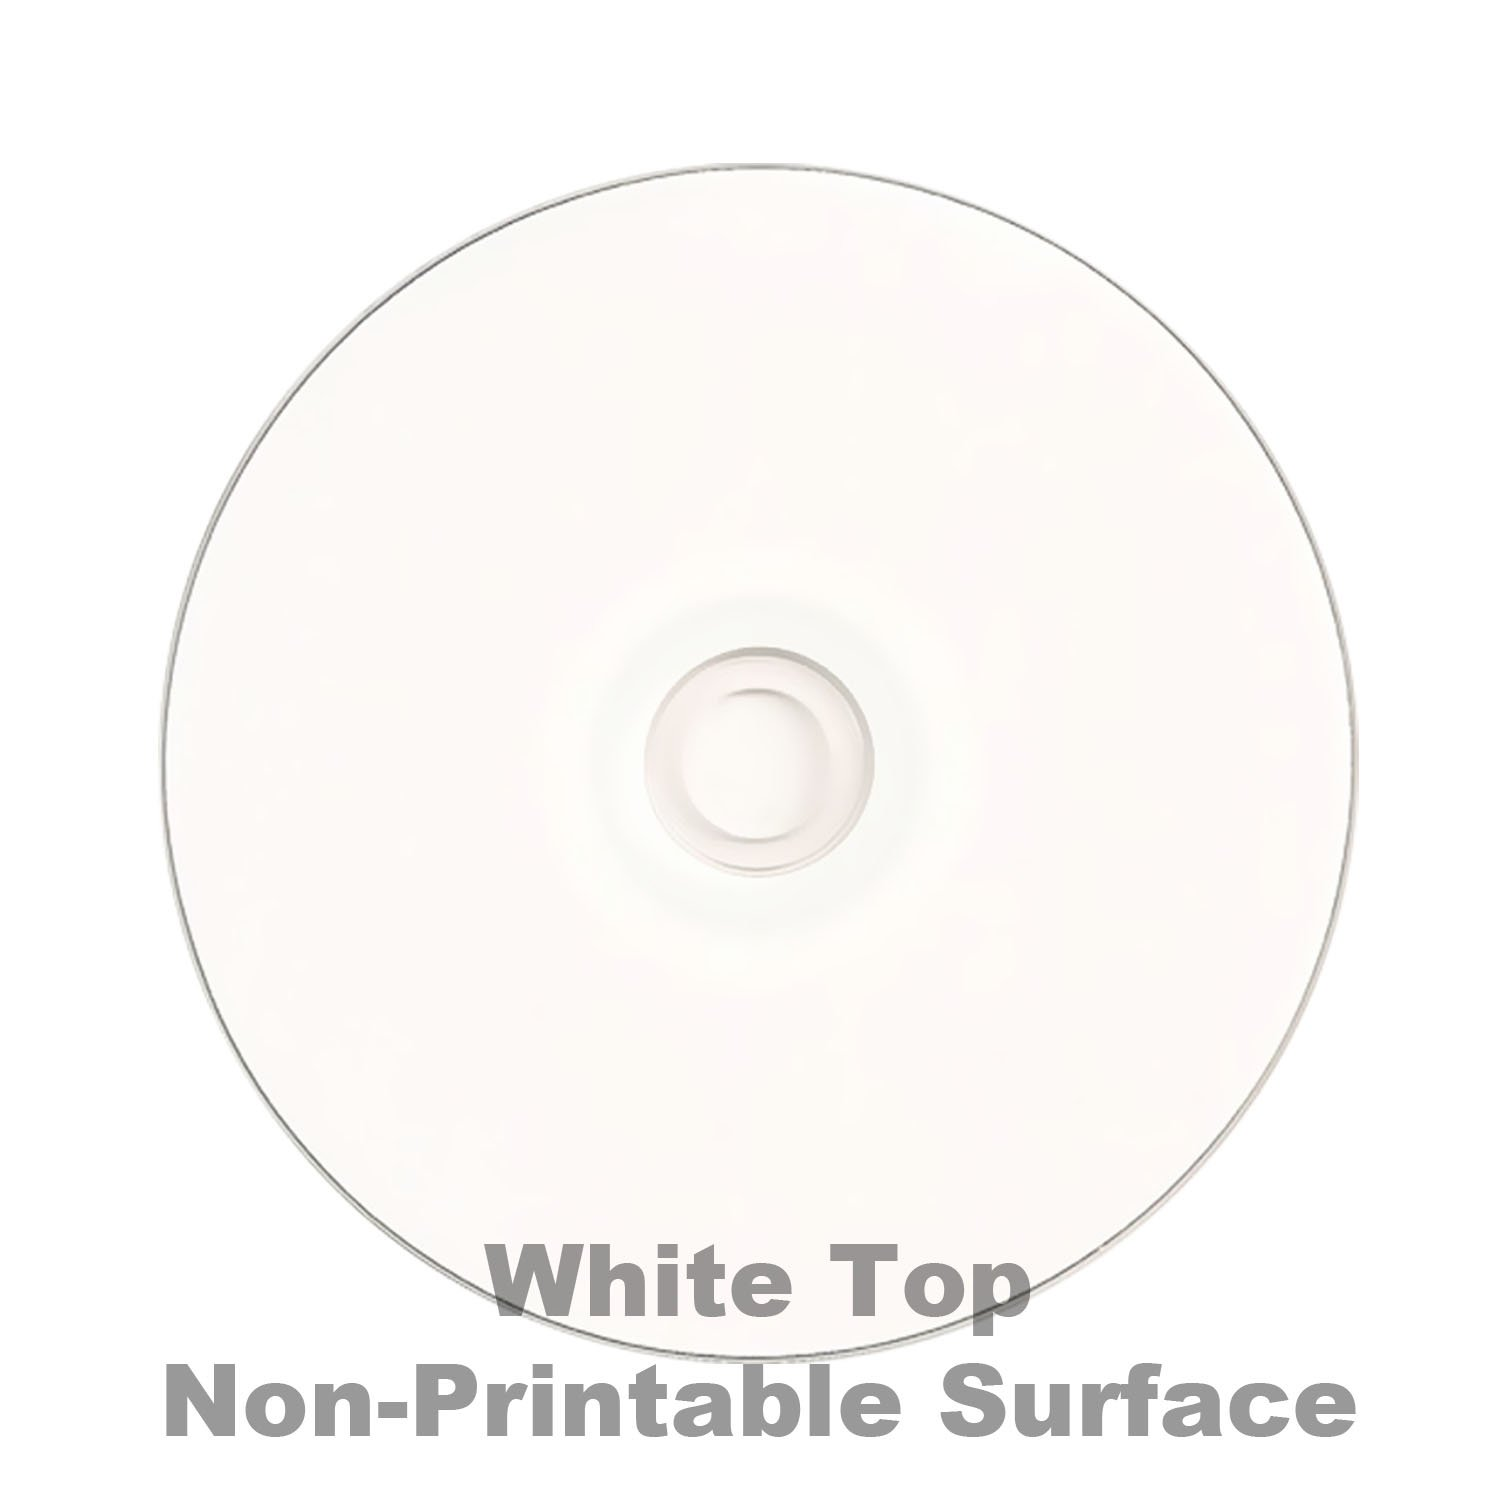 Smart Buy 100 Pack DVD-R 4.7gb 16x White Top (Non-Printable) Blank Data Video Movie Record Disc, 100 Disc 100pk by Smart Buy